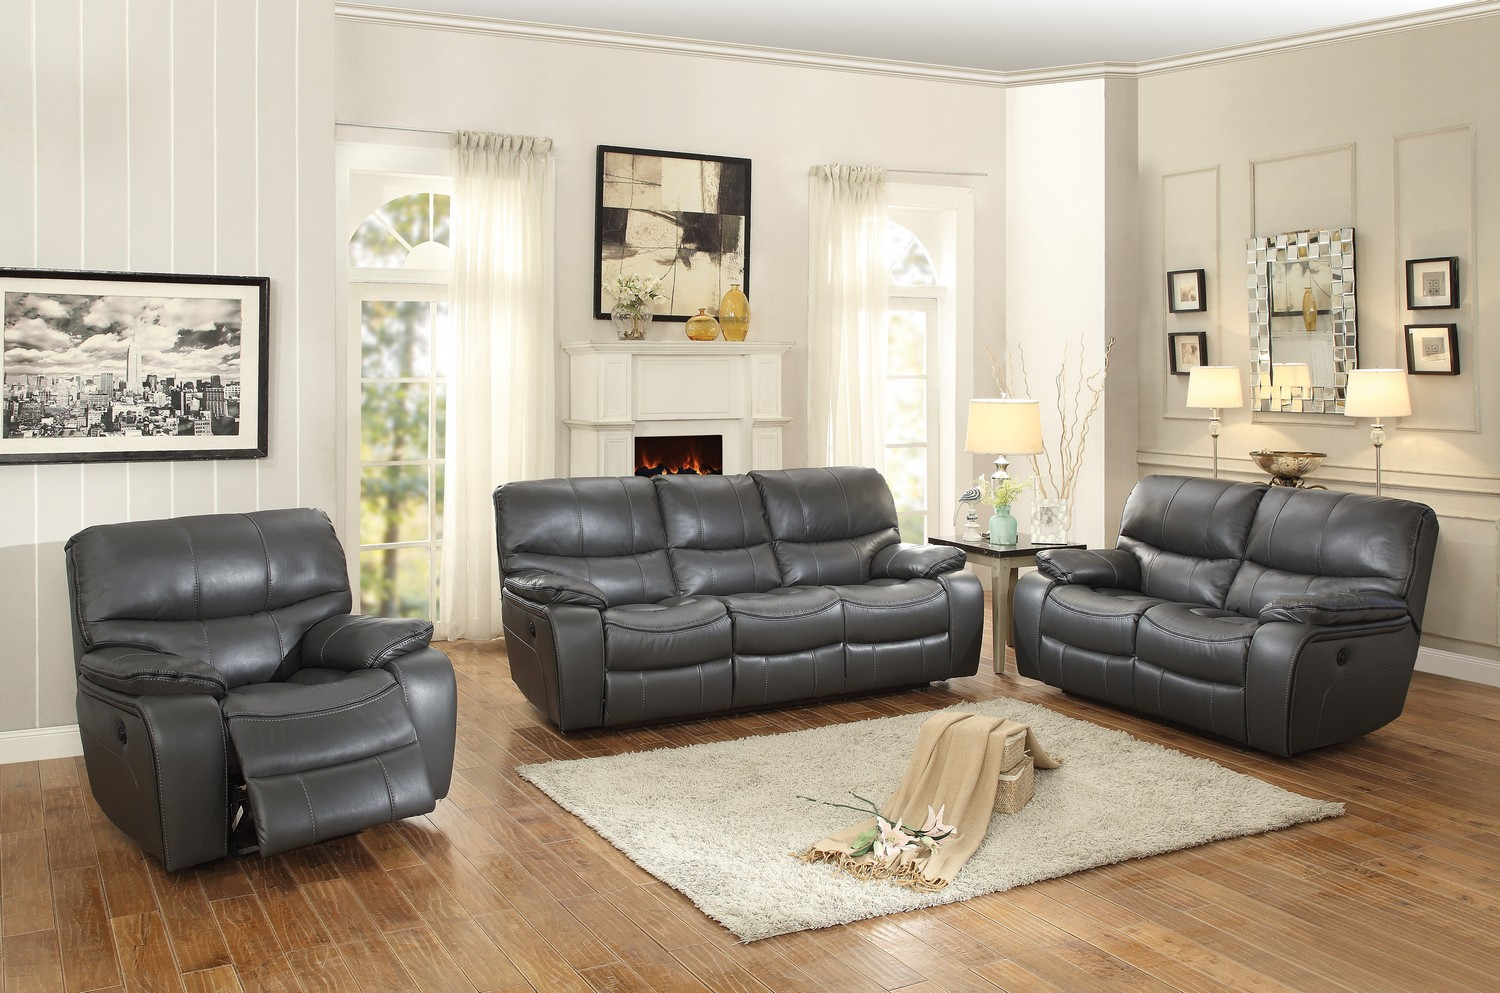 Homelegance pecos power reclining sofa set leather gel for Gray leather sofa set